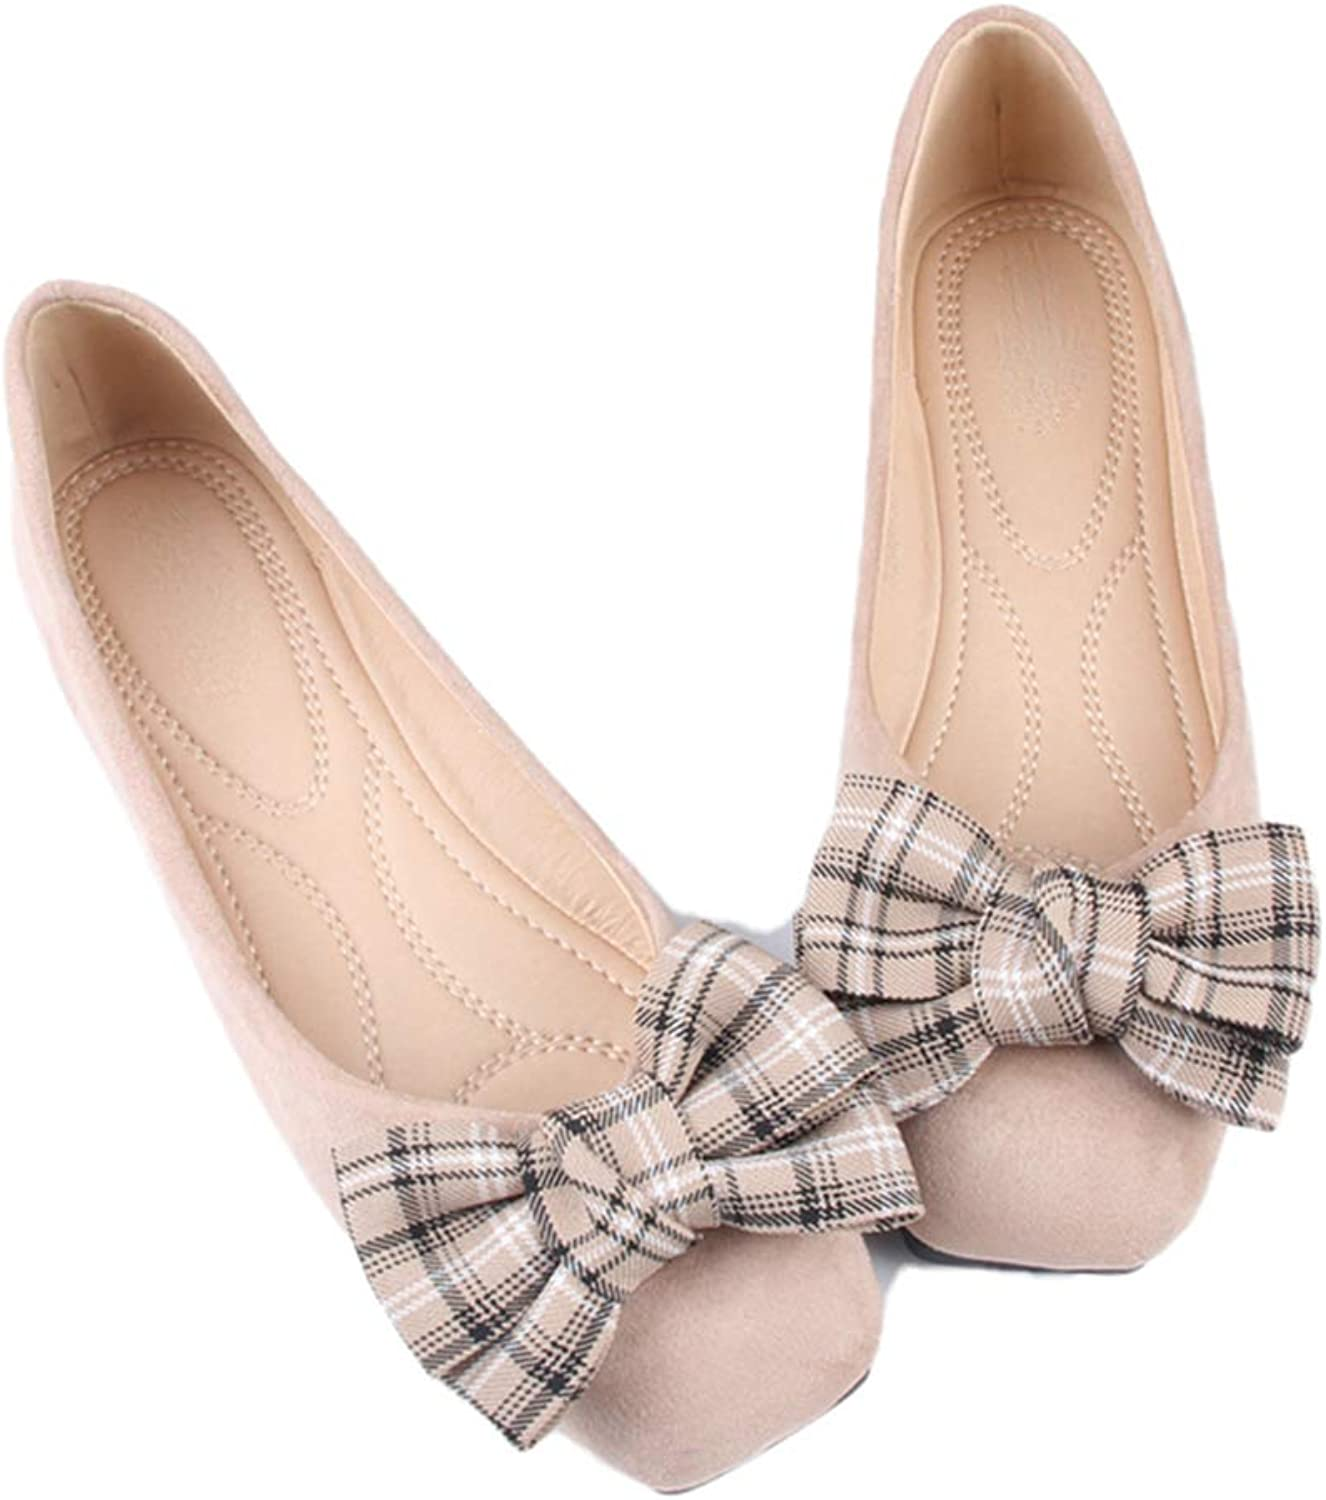 Kyle Walsh Pa Women's Casual Flats shoes Plaid Bowknot Square Toe Female Soft Comfortable Moccasins